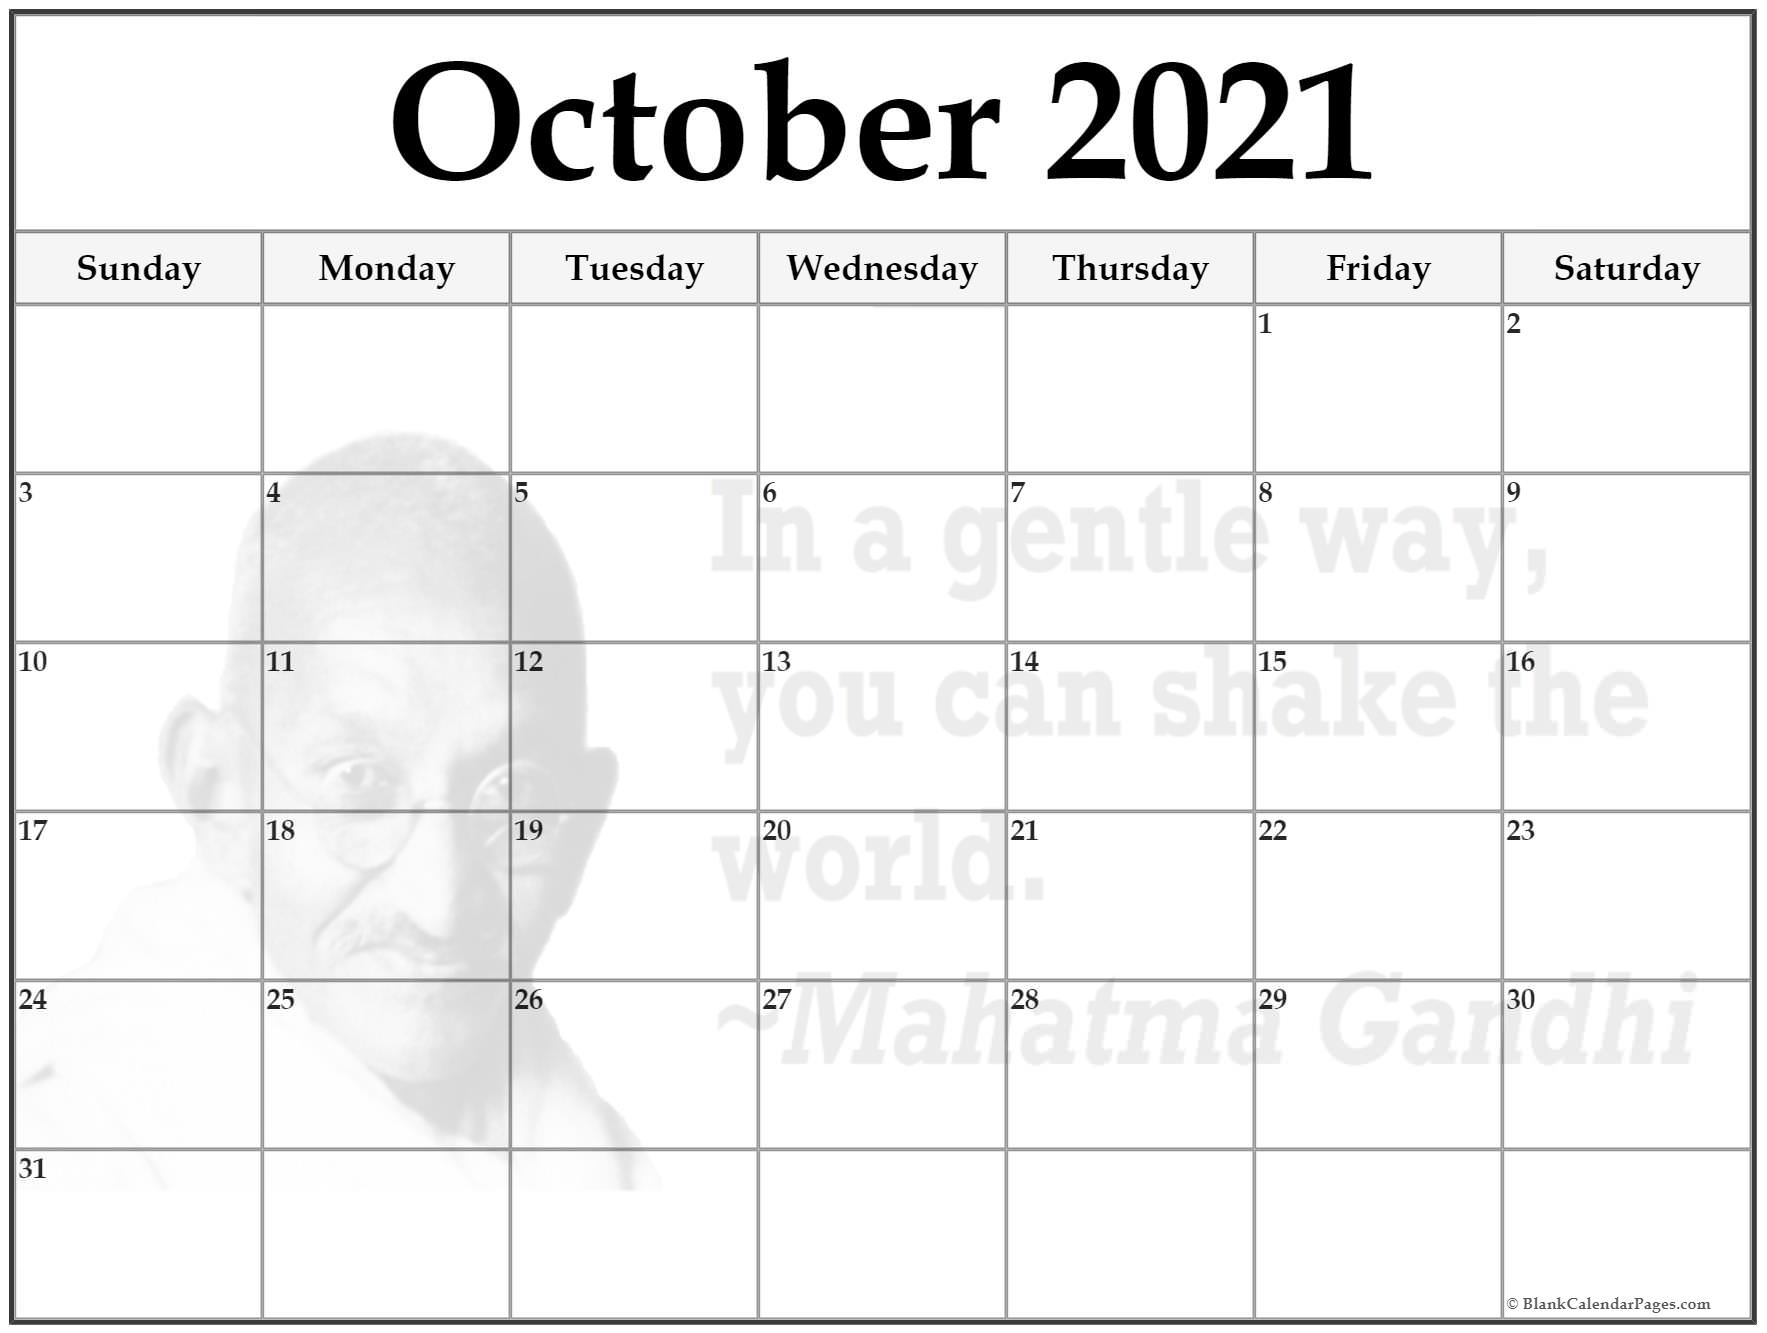 October 2021 quote calendar . In a gentle way, you can shake the world. ~Mahatma Gandhi